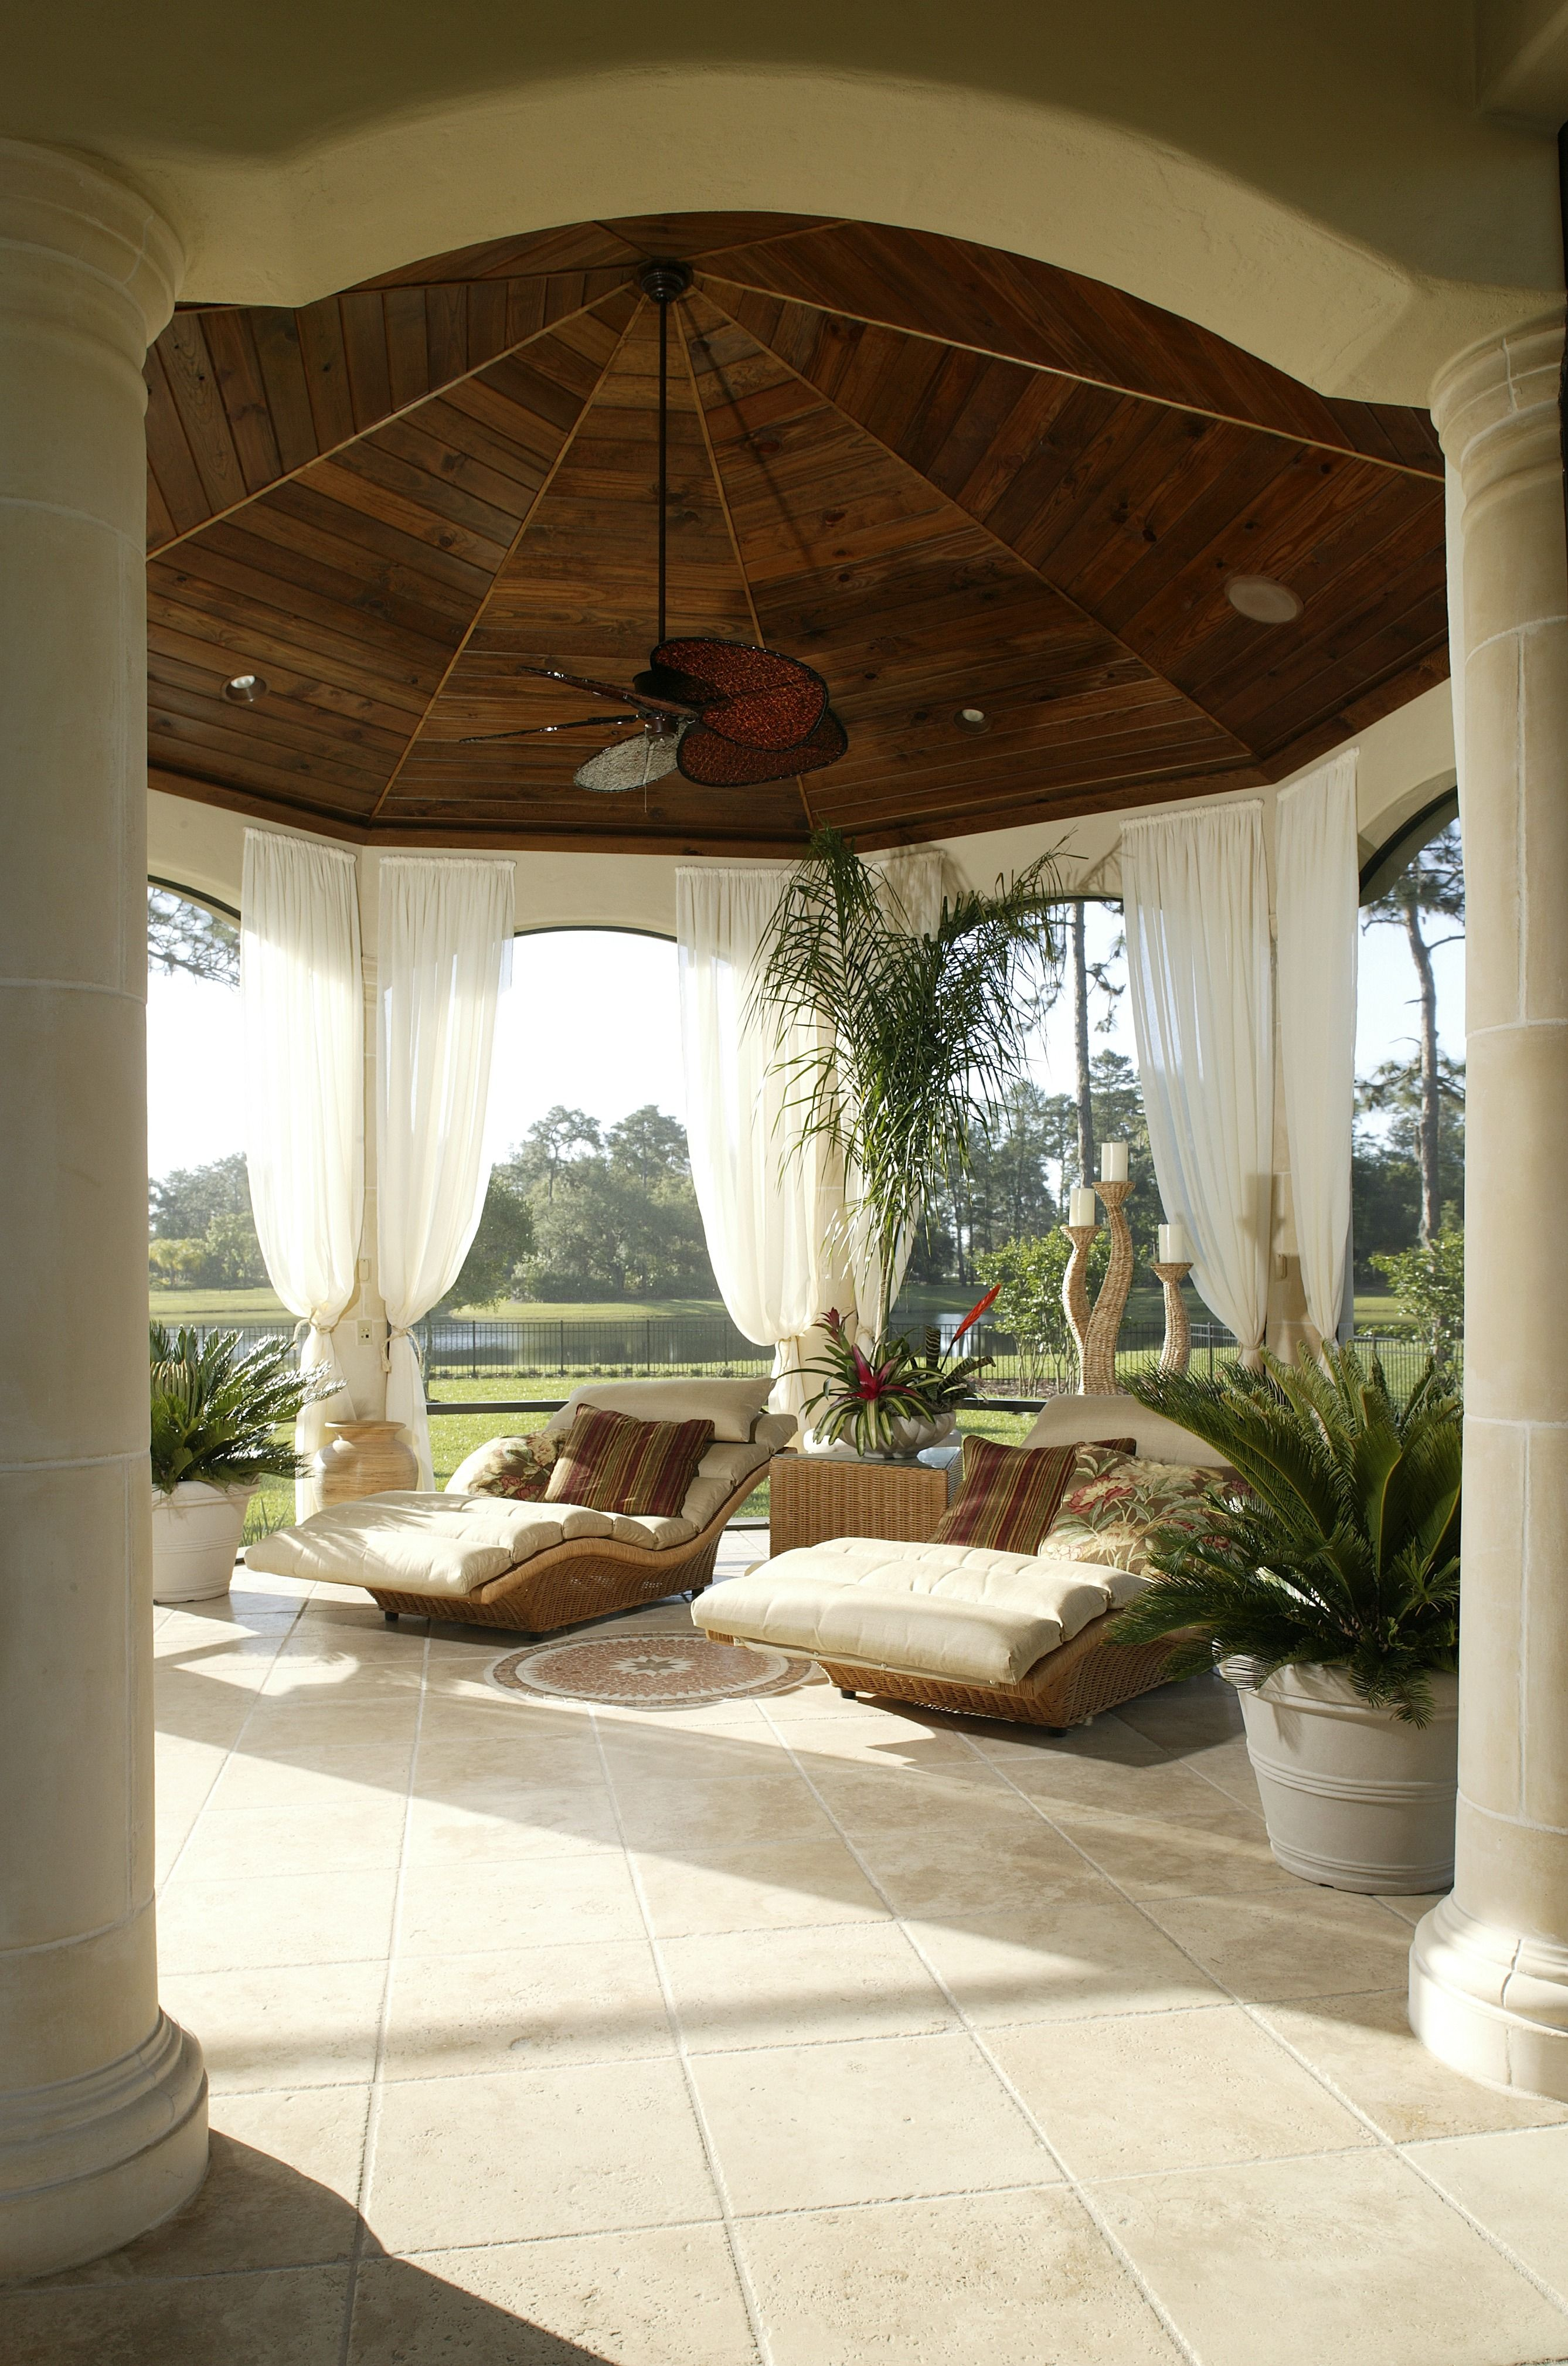 2020 Garden Path And Patios Costs Average Price For A Patio Or Pathway Patio Design Patio Tropical Patio